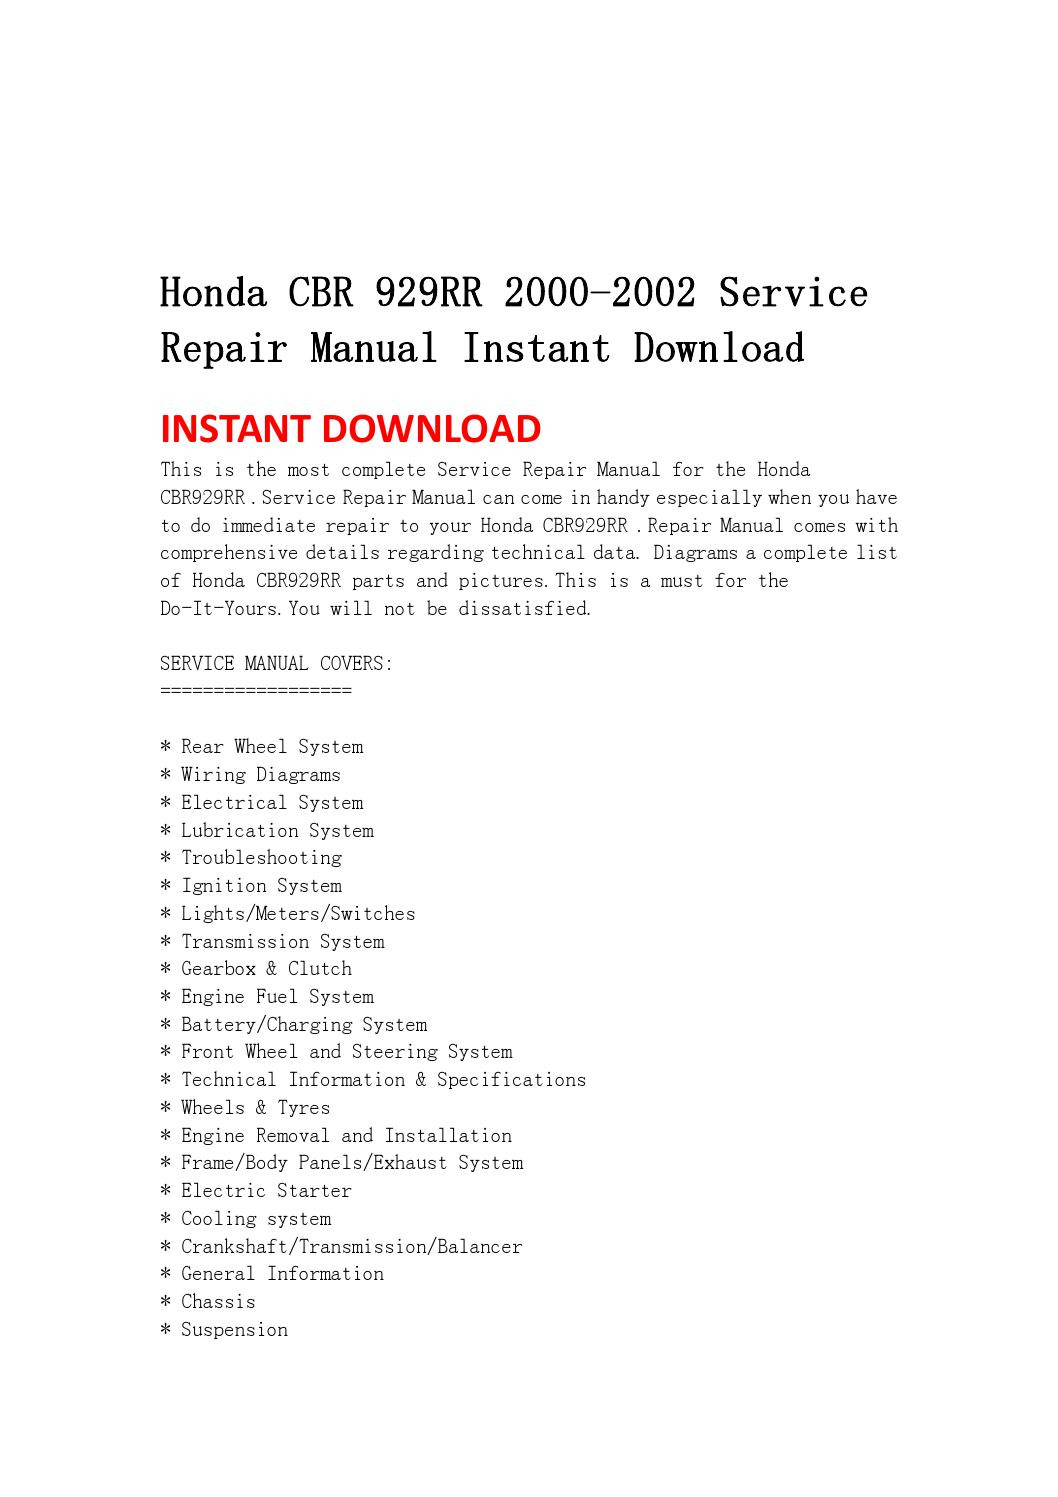 Honda cbr 929rr 2000 2002 service repair manual instant download by  fdhgsbefhnn - issuu